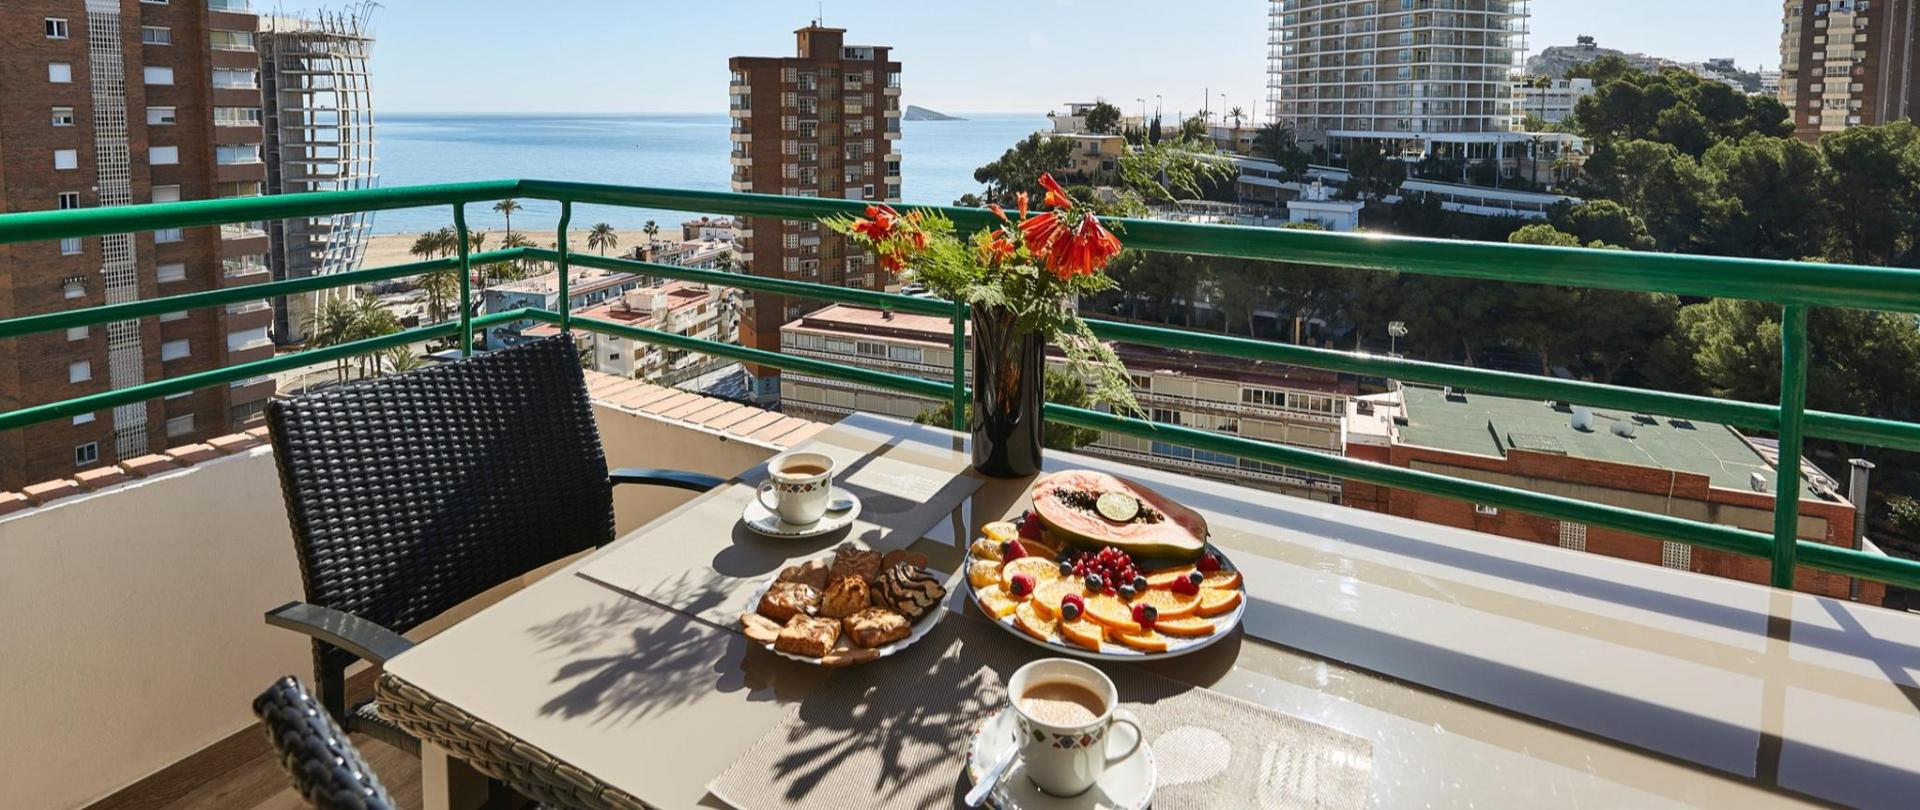 Sonrisa Apartments - Superior Apartments with Balcony and Sea View12.jpg